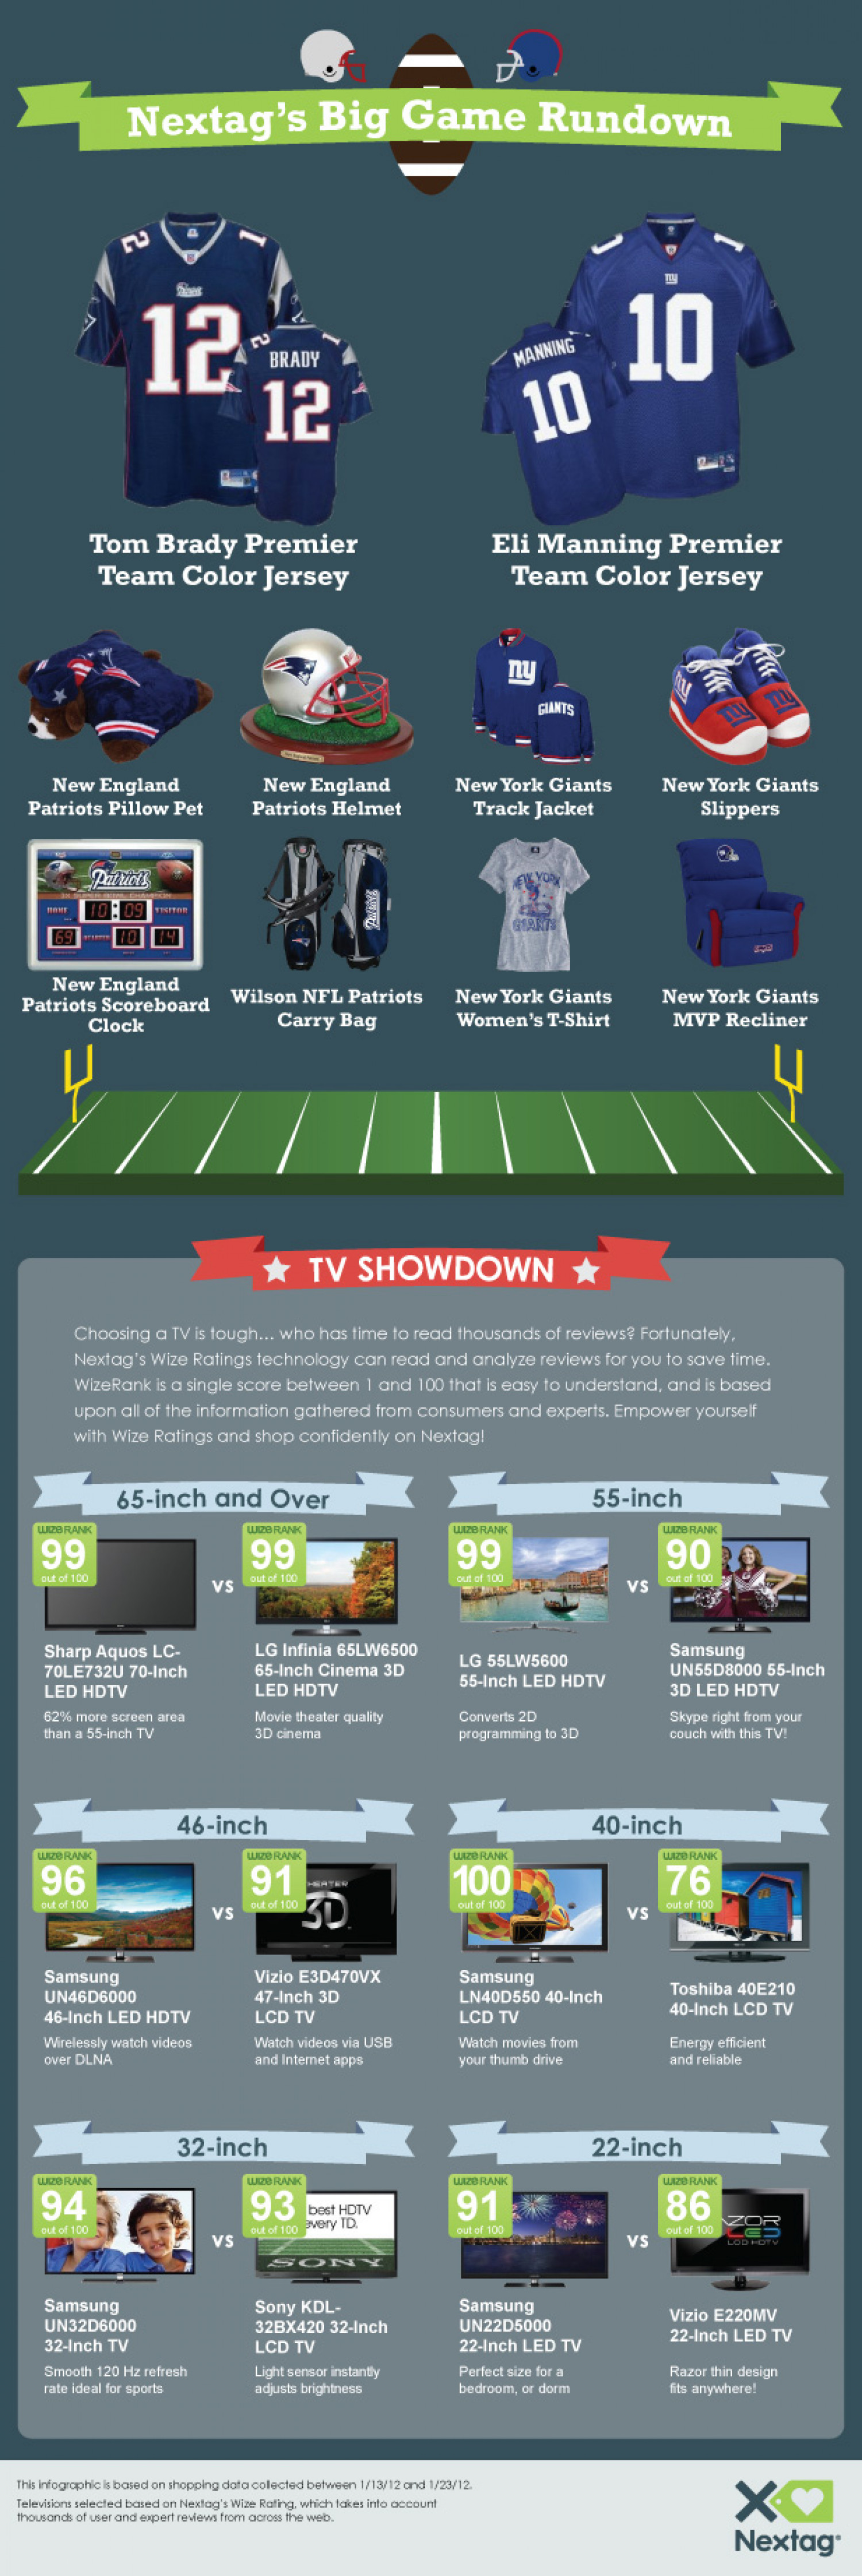 Nextag's Big Game Rundown Infographic